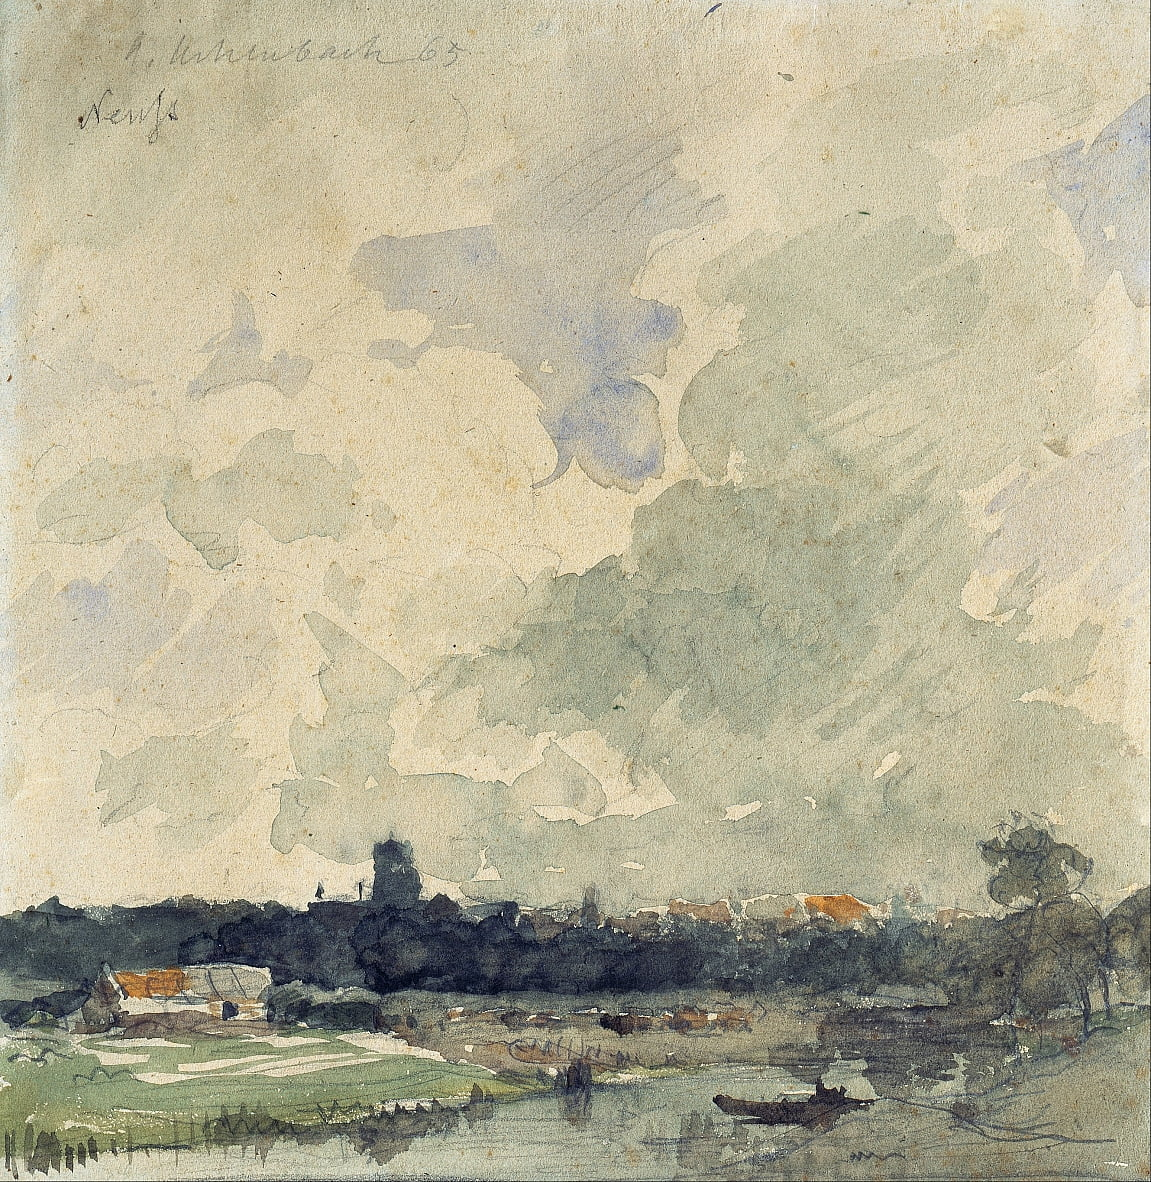 View of Neuss by Andreas Achenbach